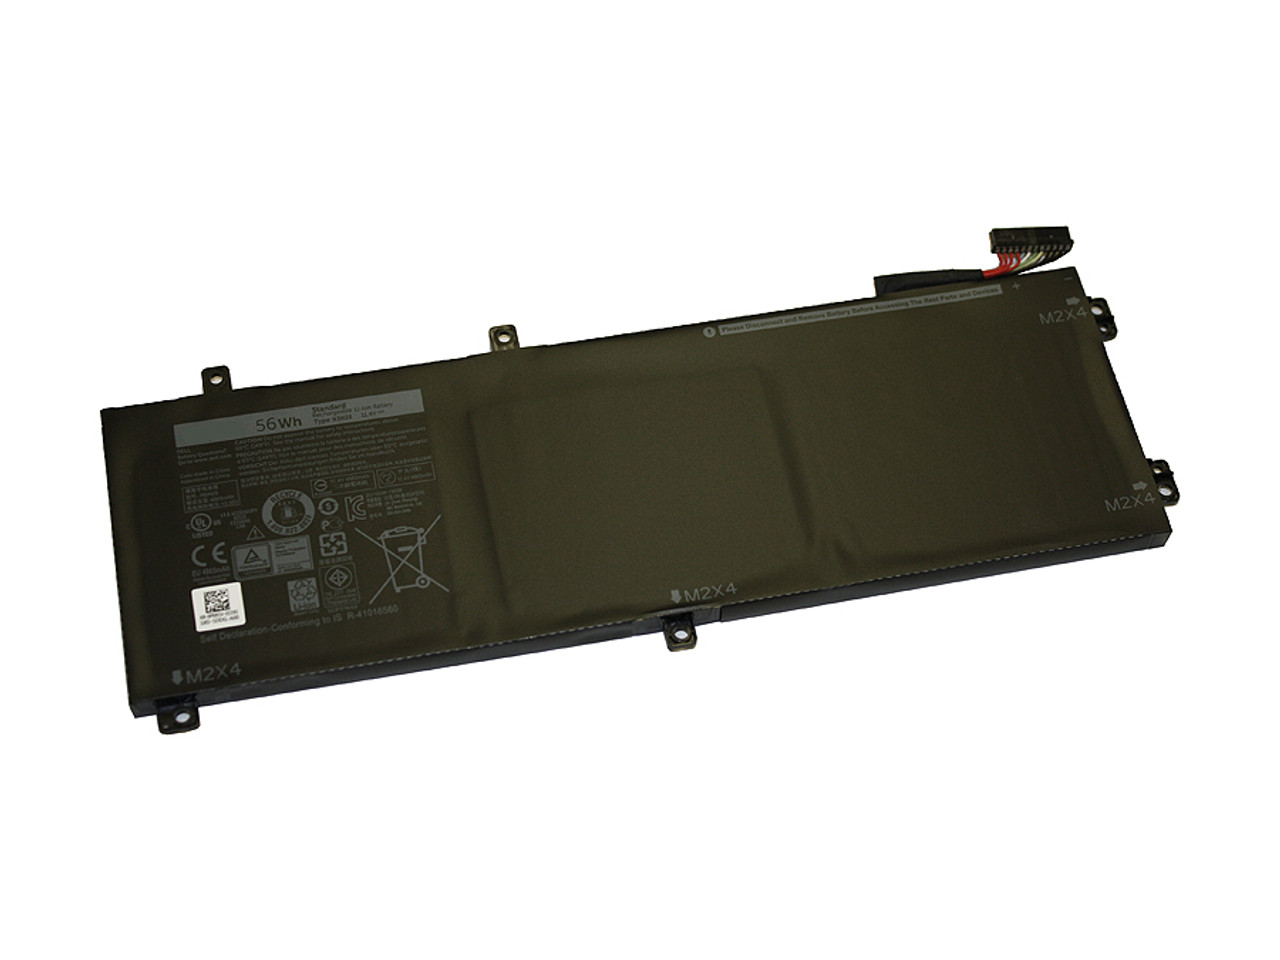 Replacement Battery for XPS 15 9560, 15 9570, 15 9570